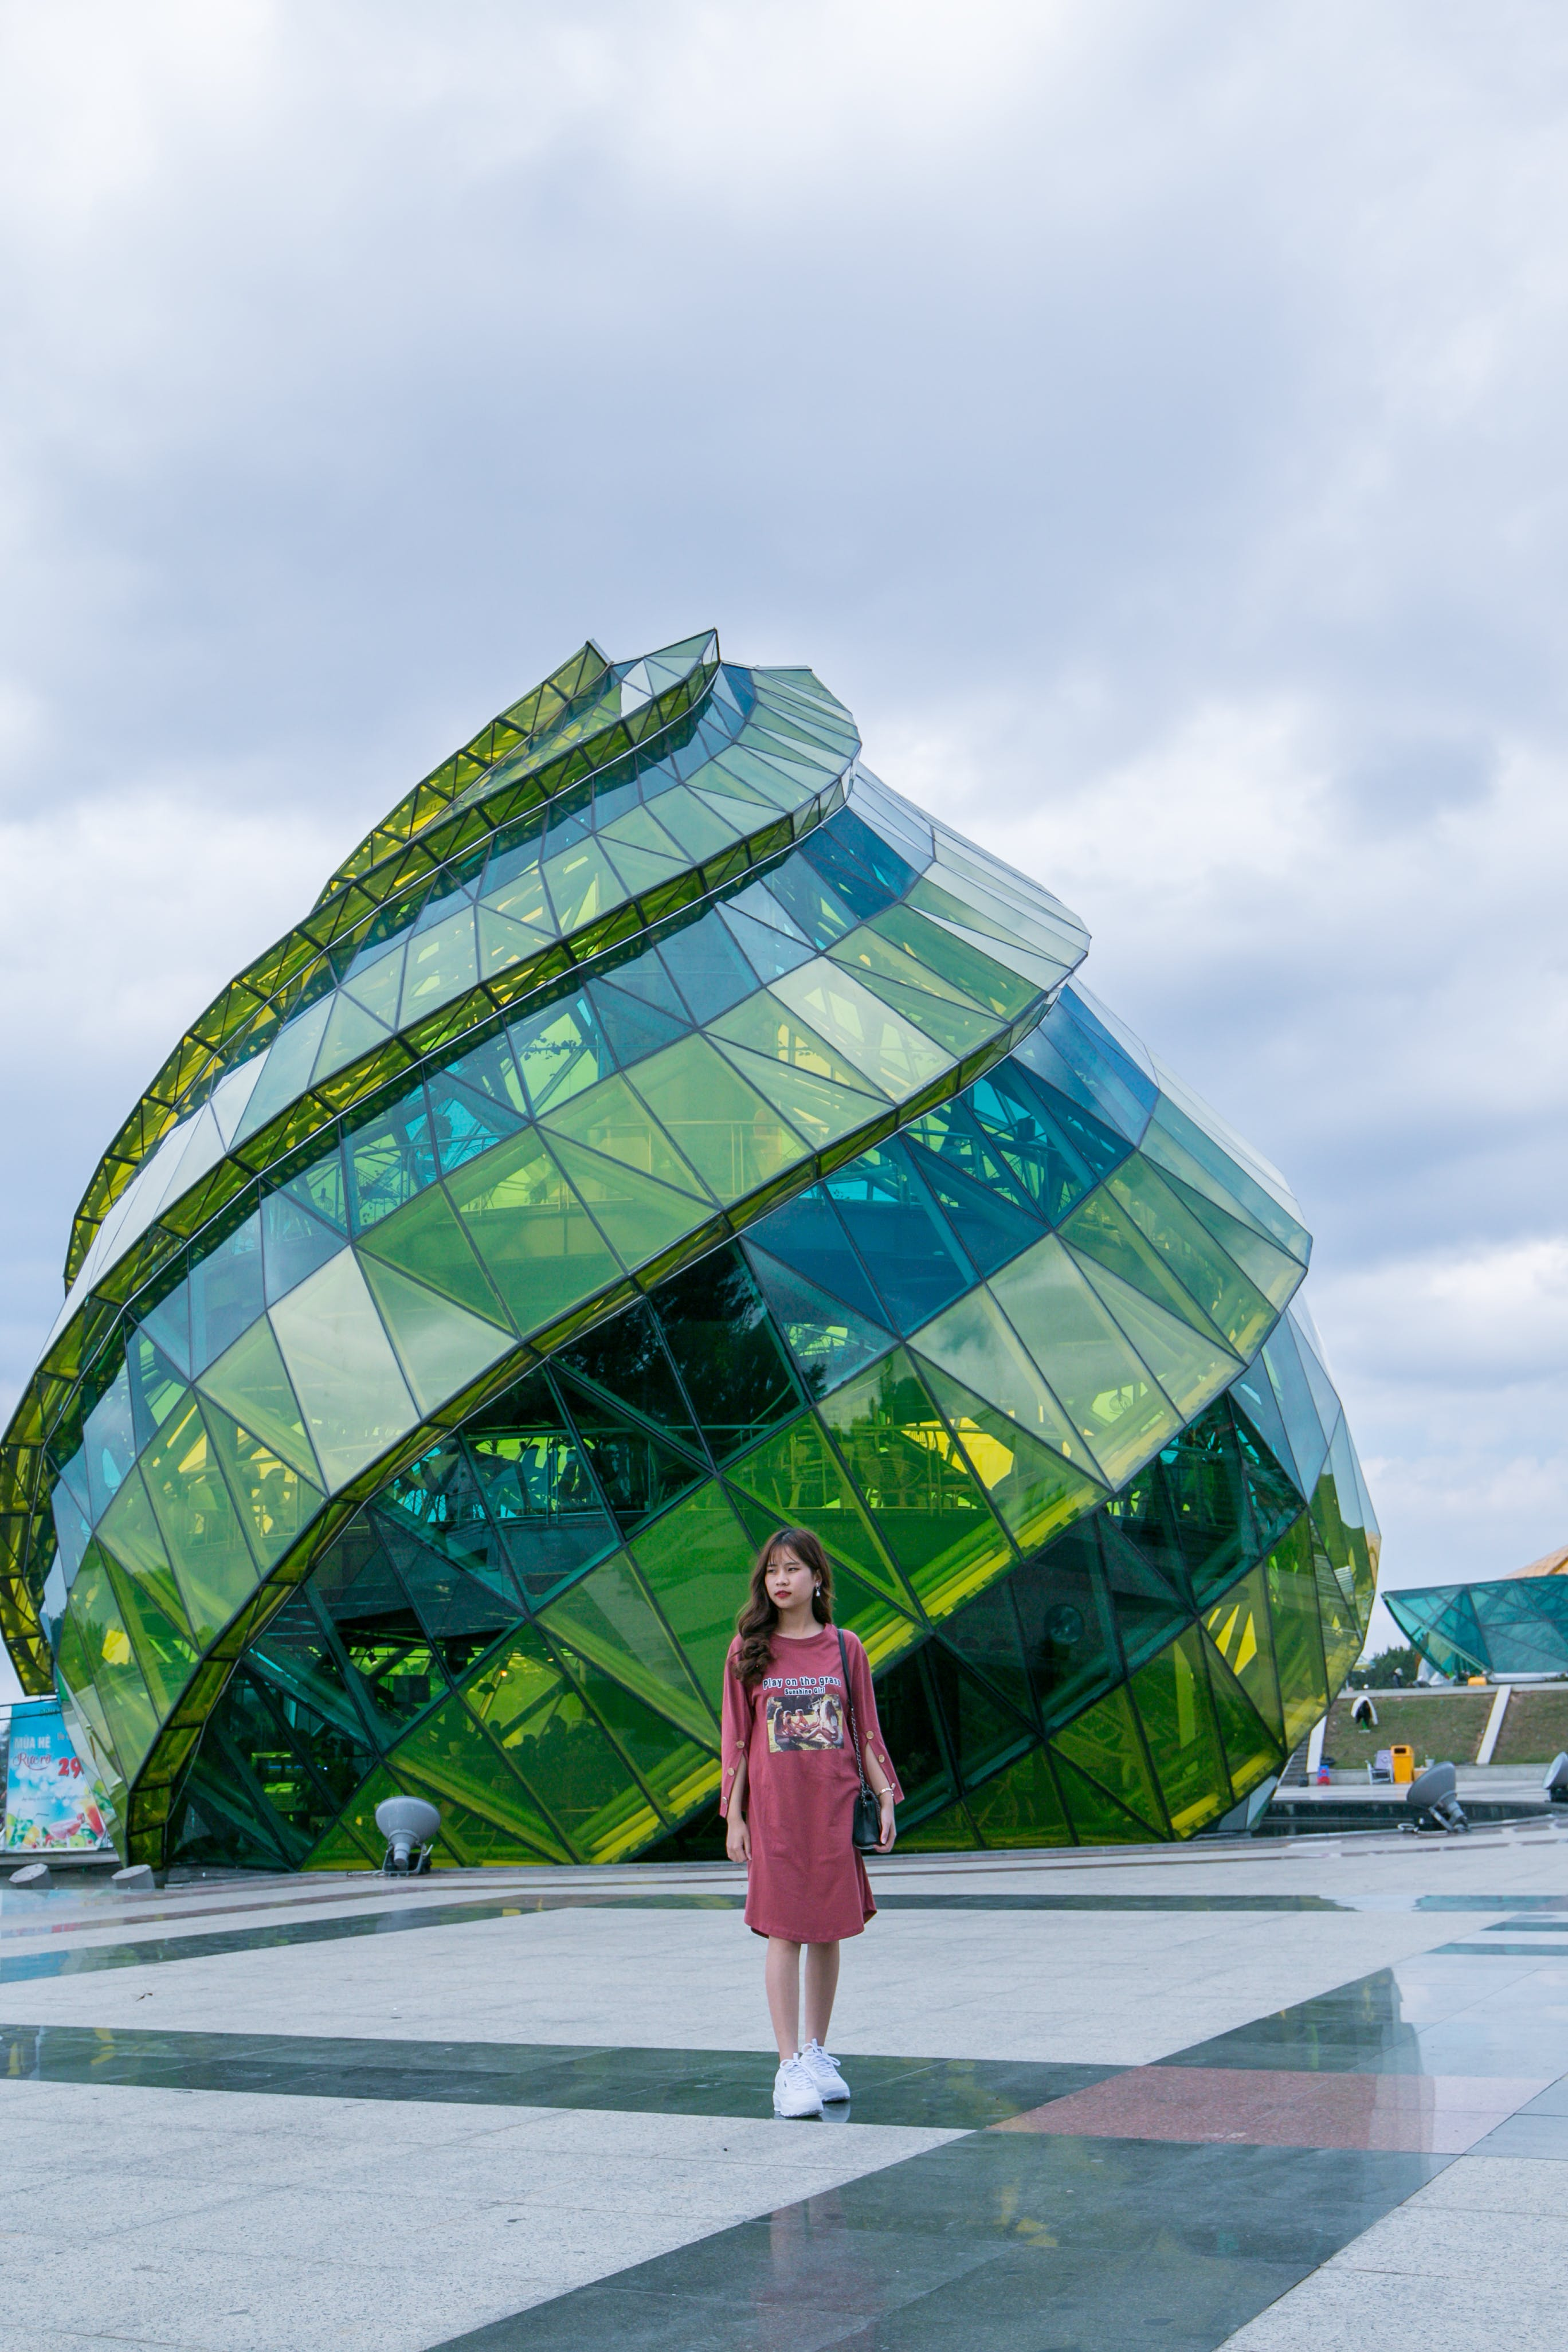 Green and Teal Glass Dome Building